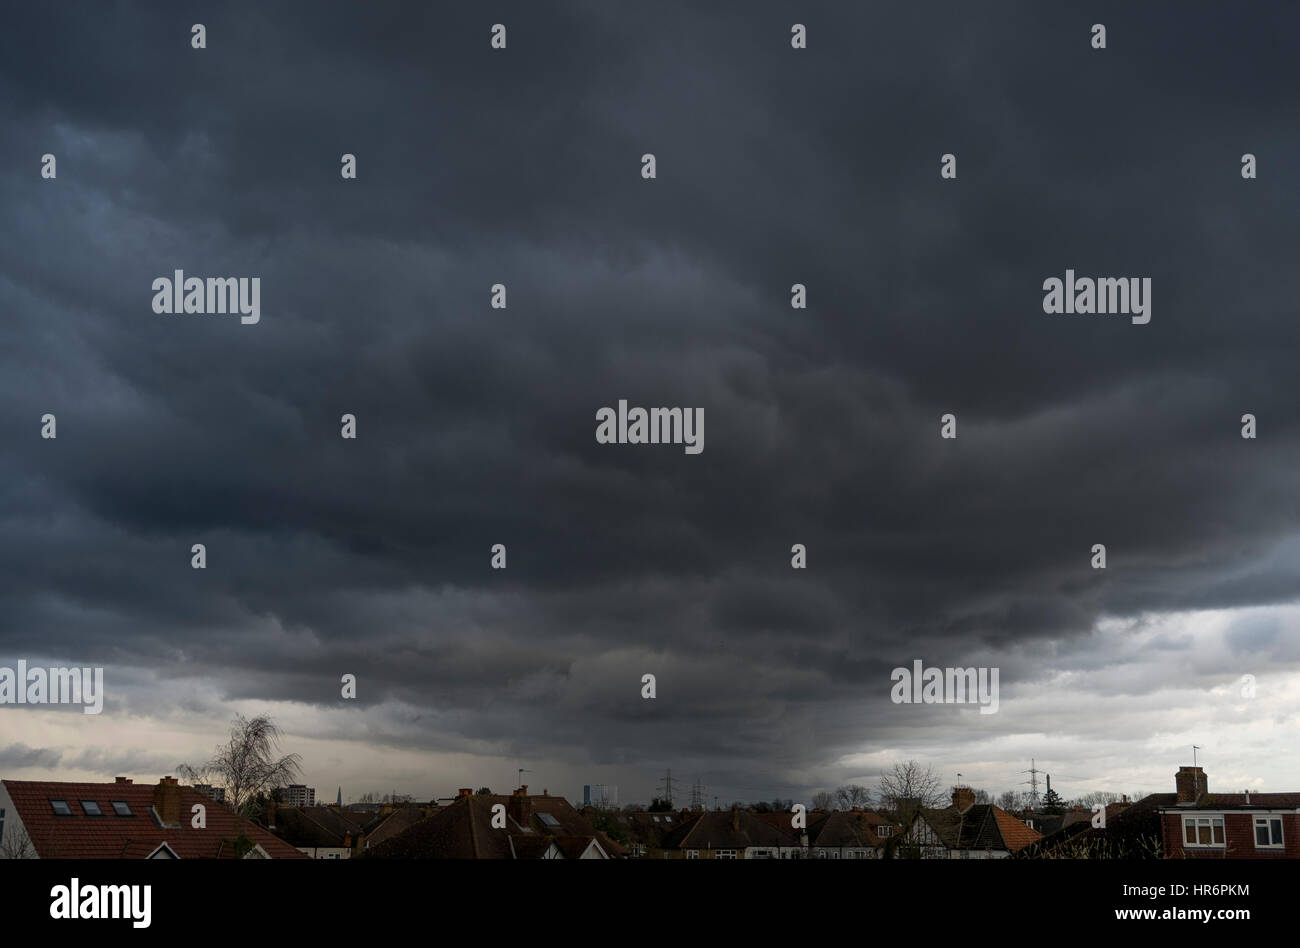 Wimbledon, London, UK. 27th February, 2017. Large formation of grey storm clouds move across London late afternoon - Stock Image